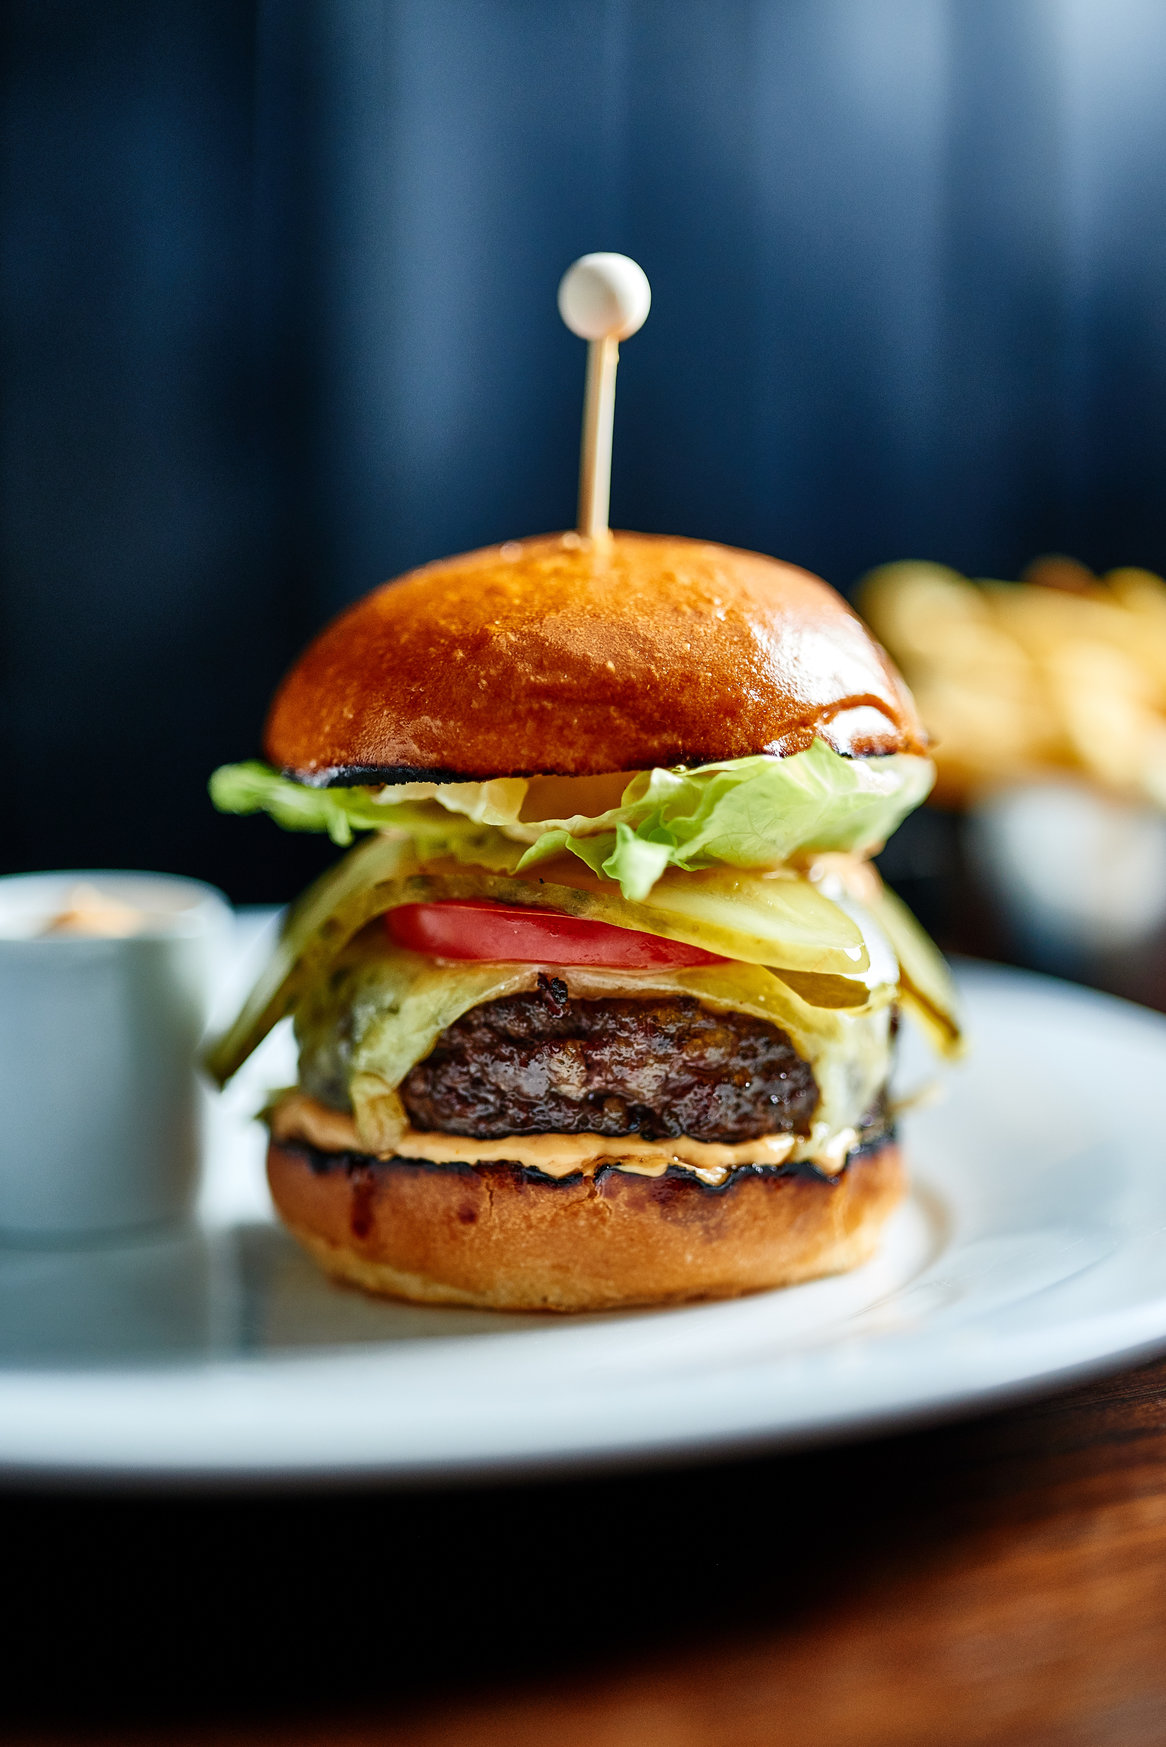 'The Crown' Burger - Bray